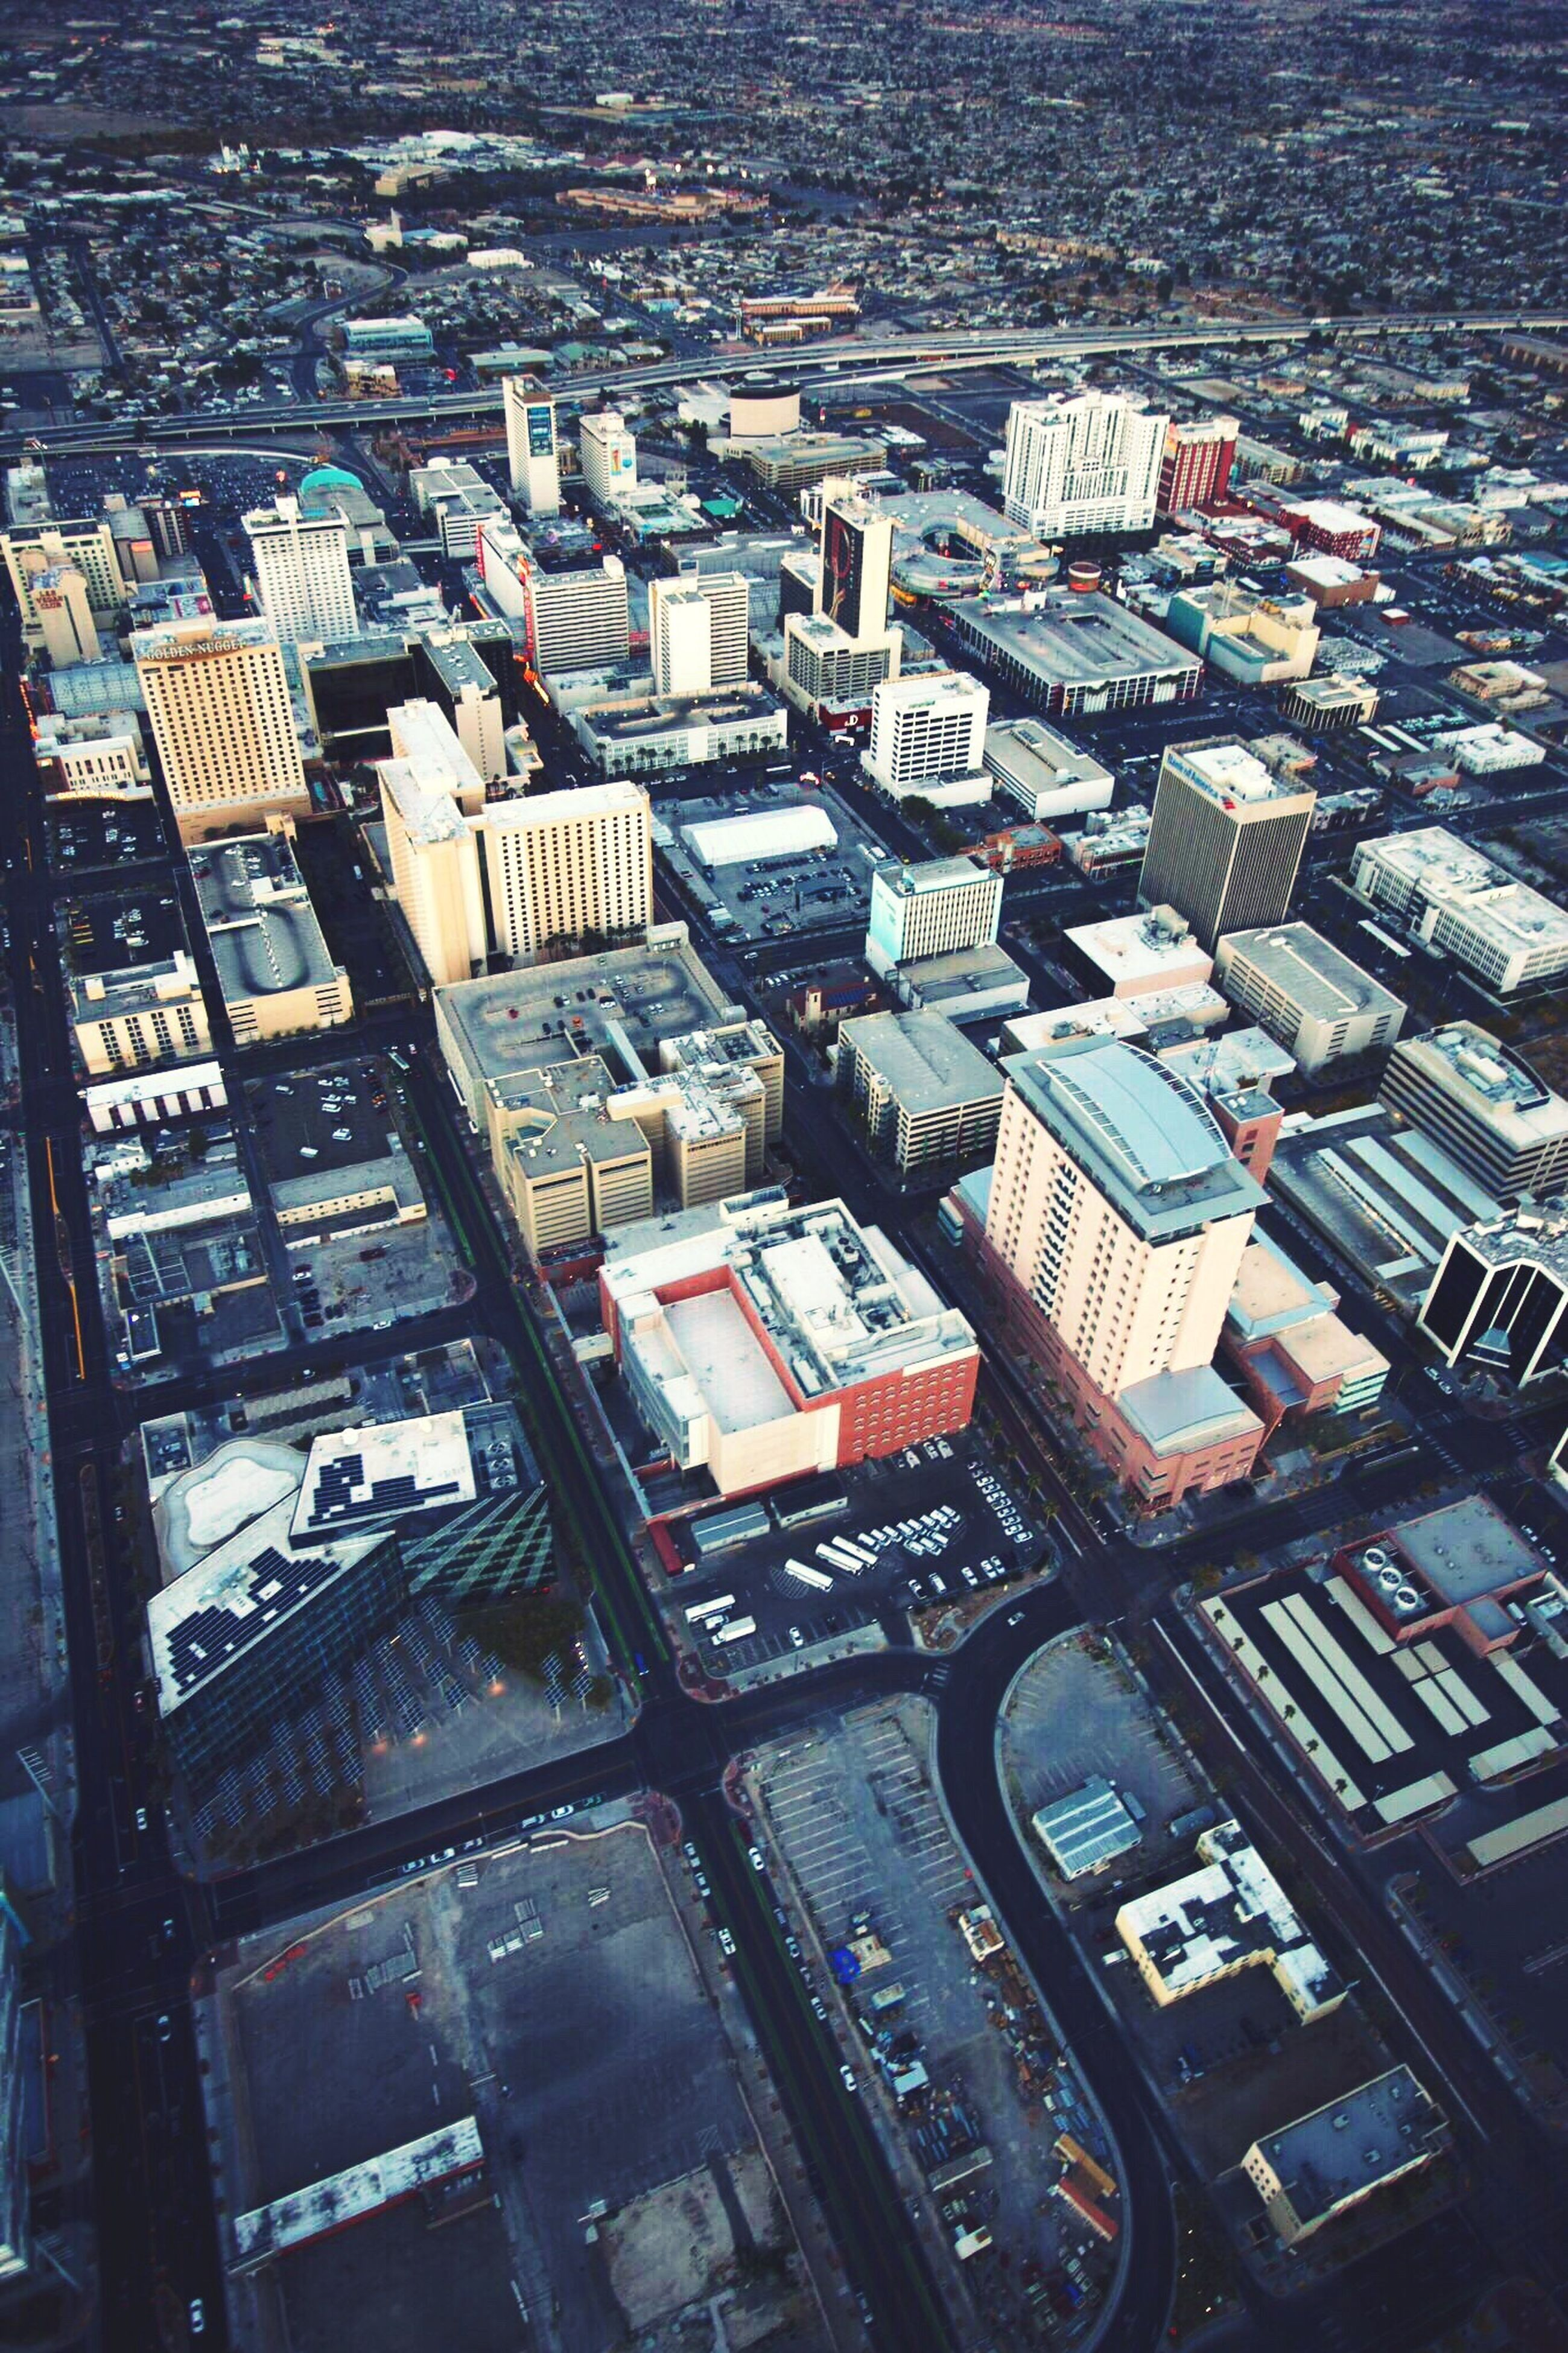 high angle view, building exterior, architecture, city, cityscape, built structure, crowded, aerial view, residential district, residential structure, residential building, elevated view, water, city life, skyscraper, outdoors, no people, day, tower, transportation